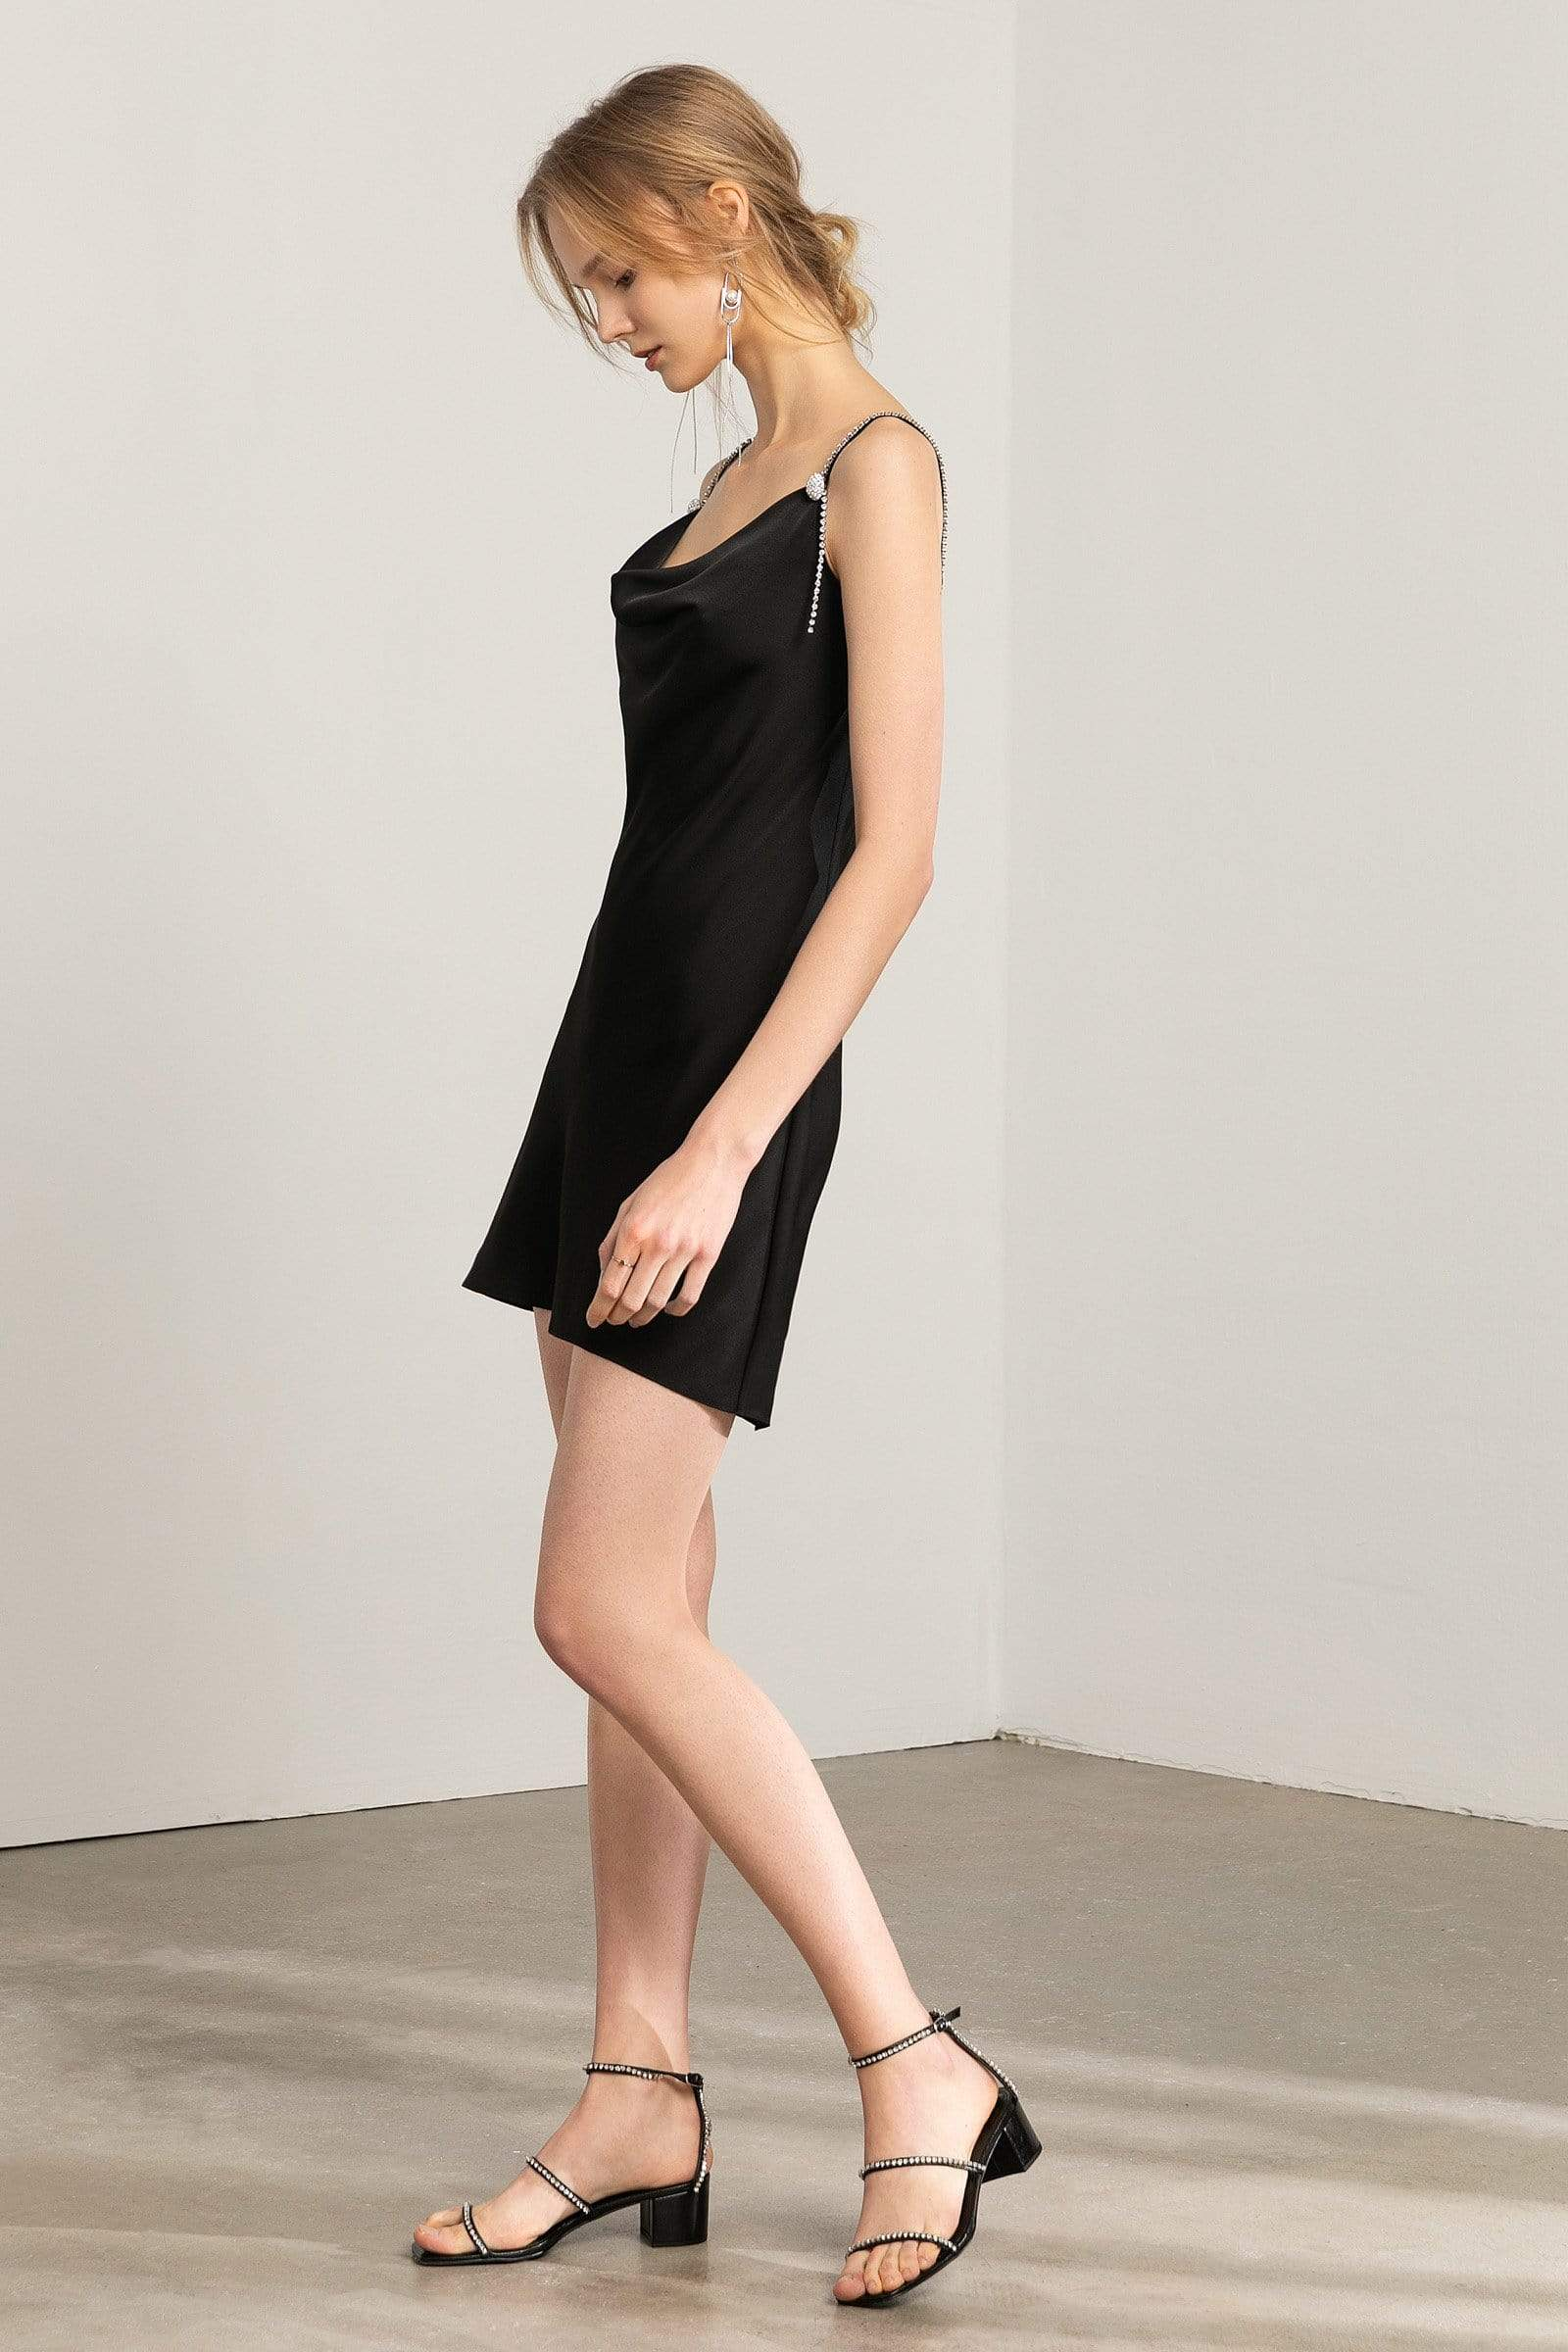 Devana Black Silky Cowl-Neck Dress